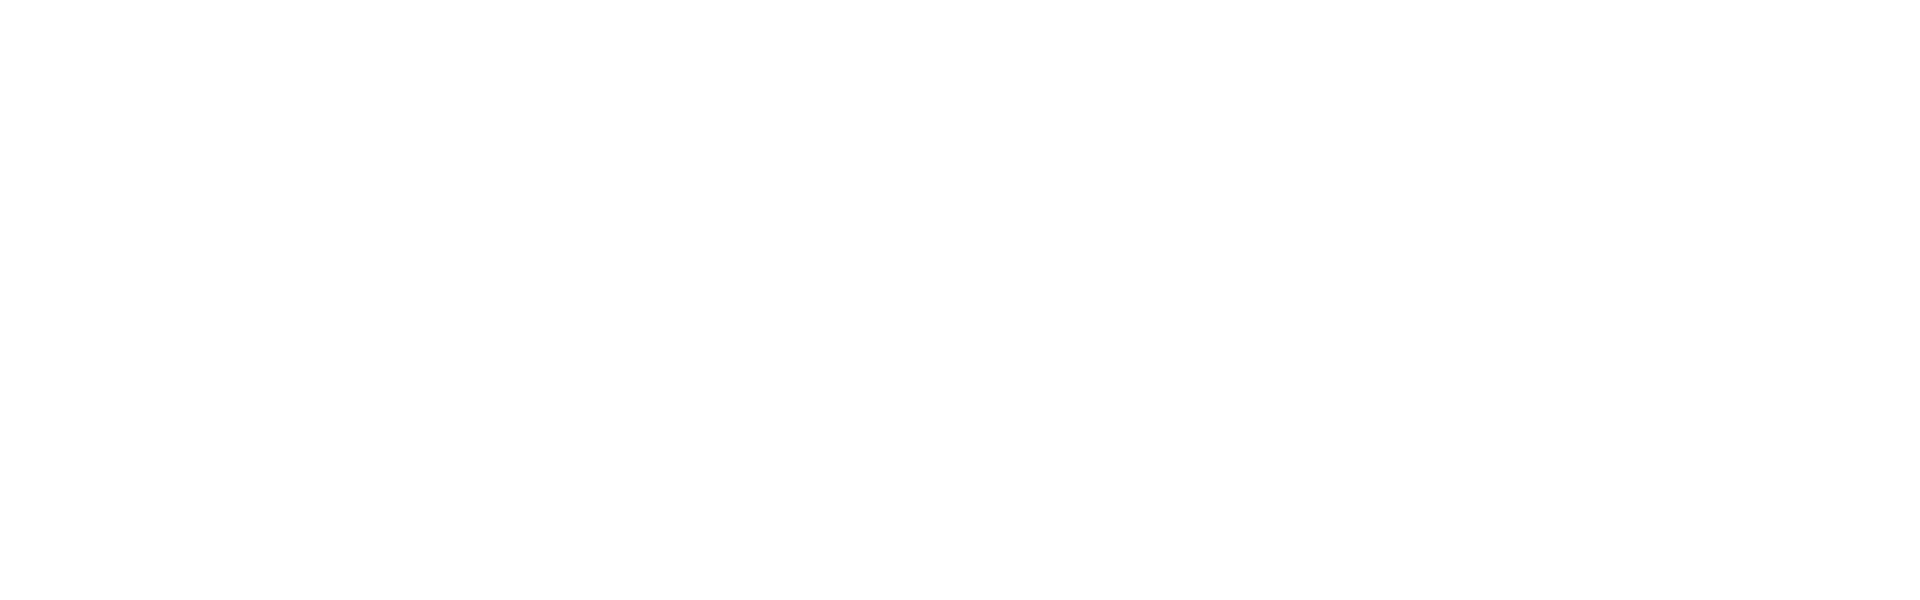 Divided-overlay